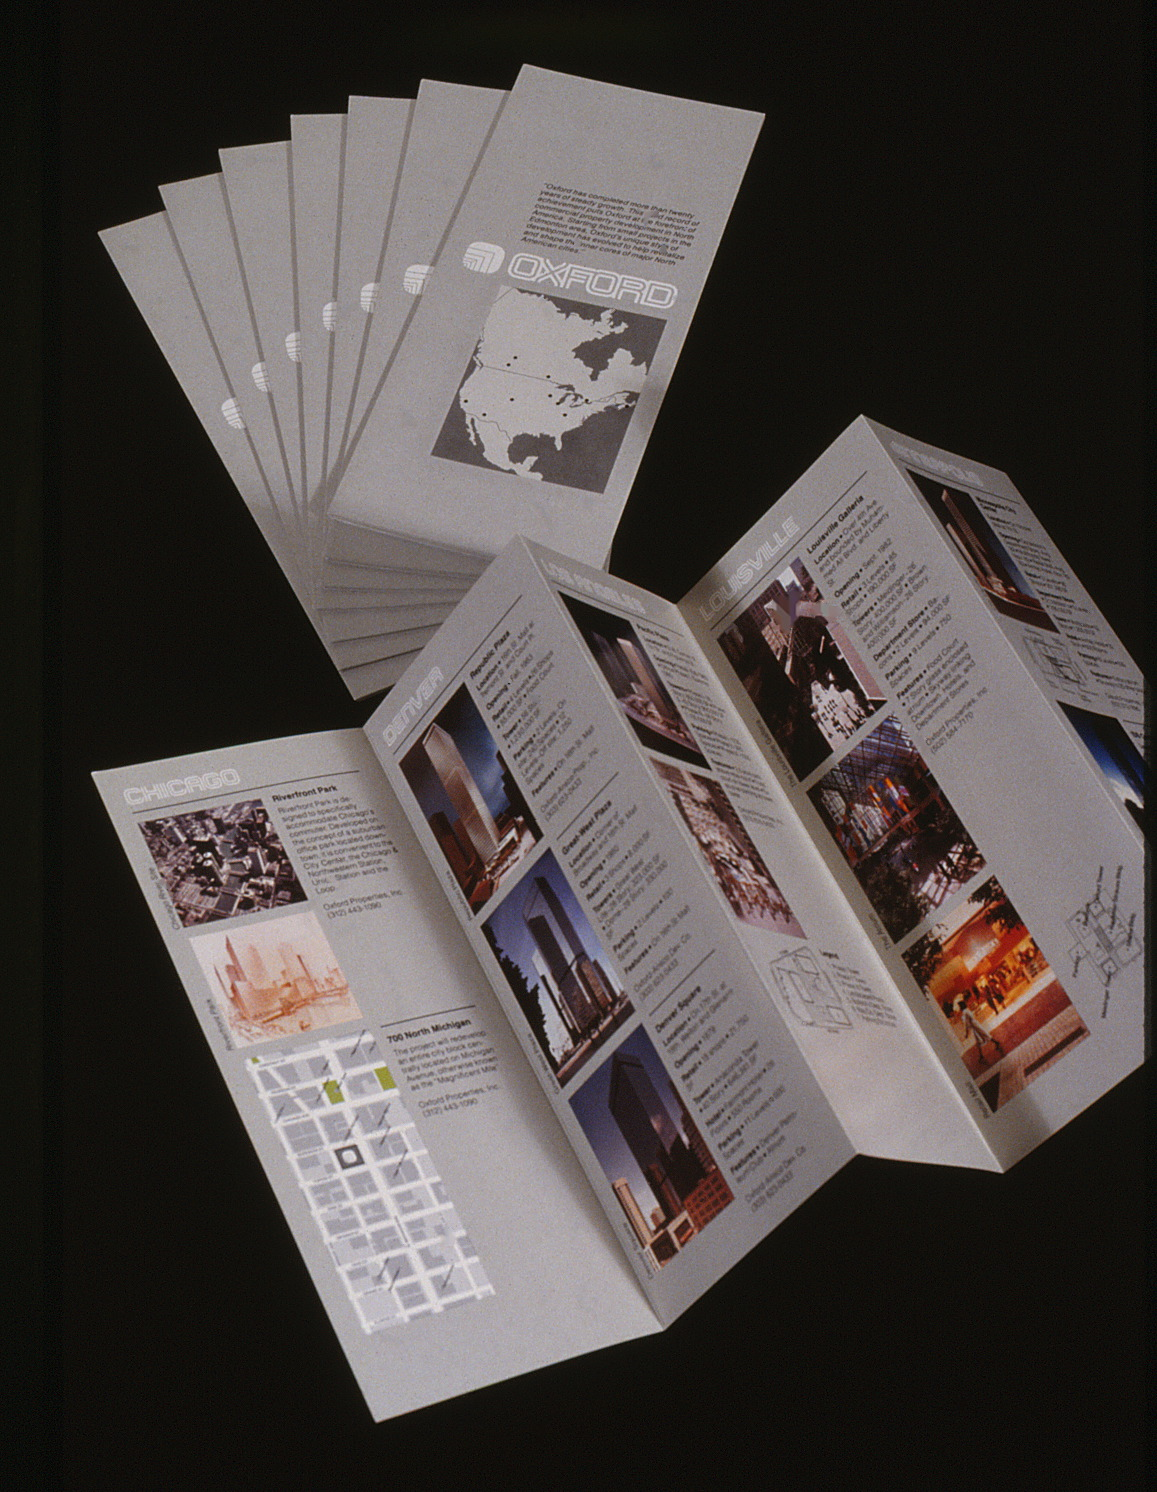 The fold-out brochures shown closed and folded out with multiple spines.